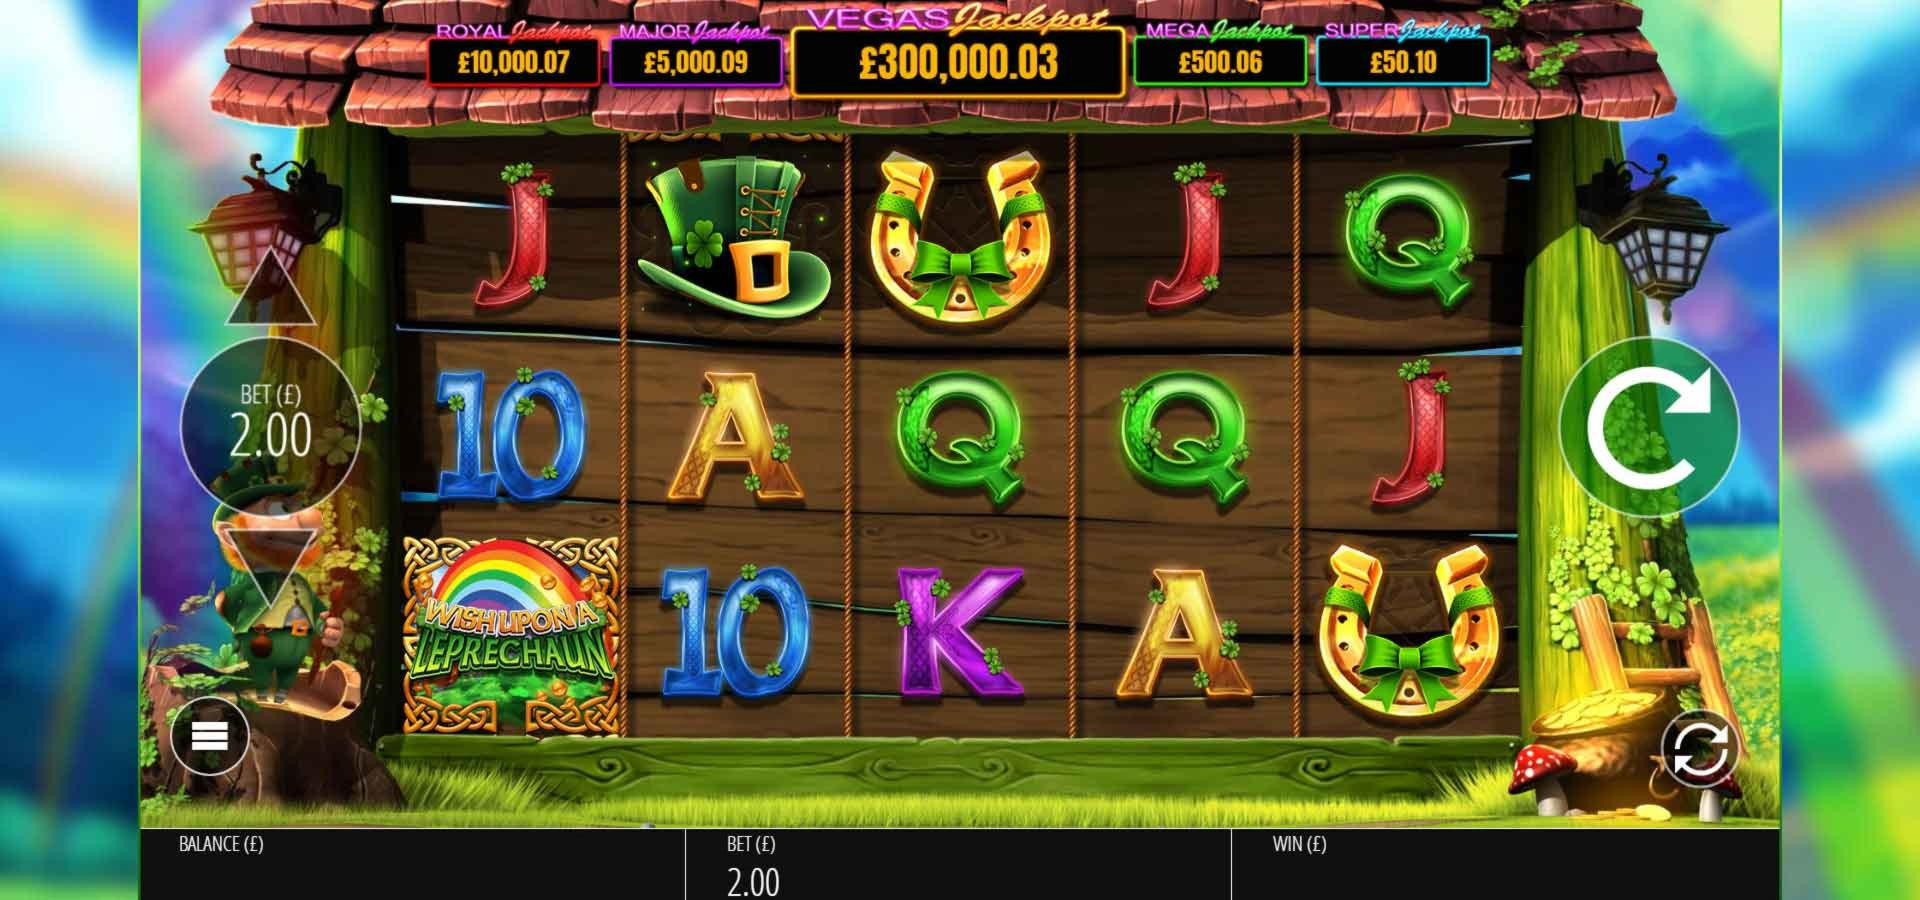 Bónus de Boas-Vindas do 800% Casino no Wink Slots